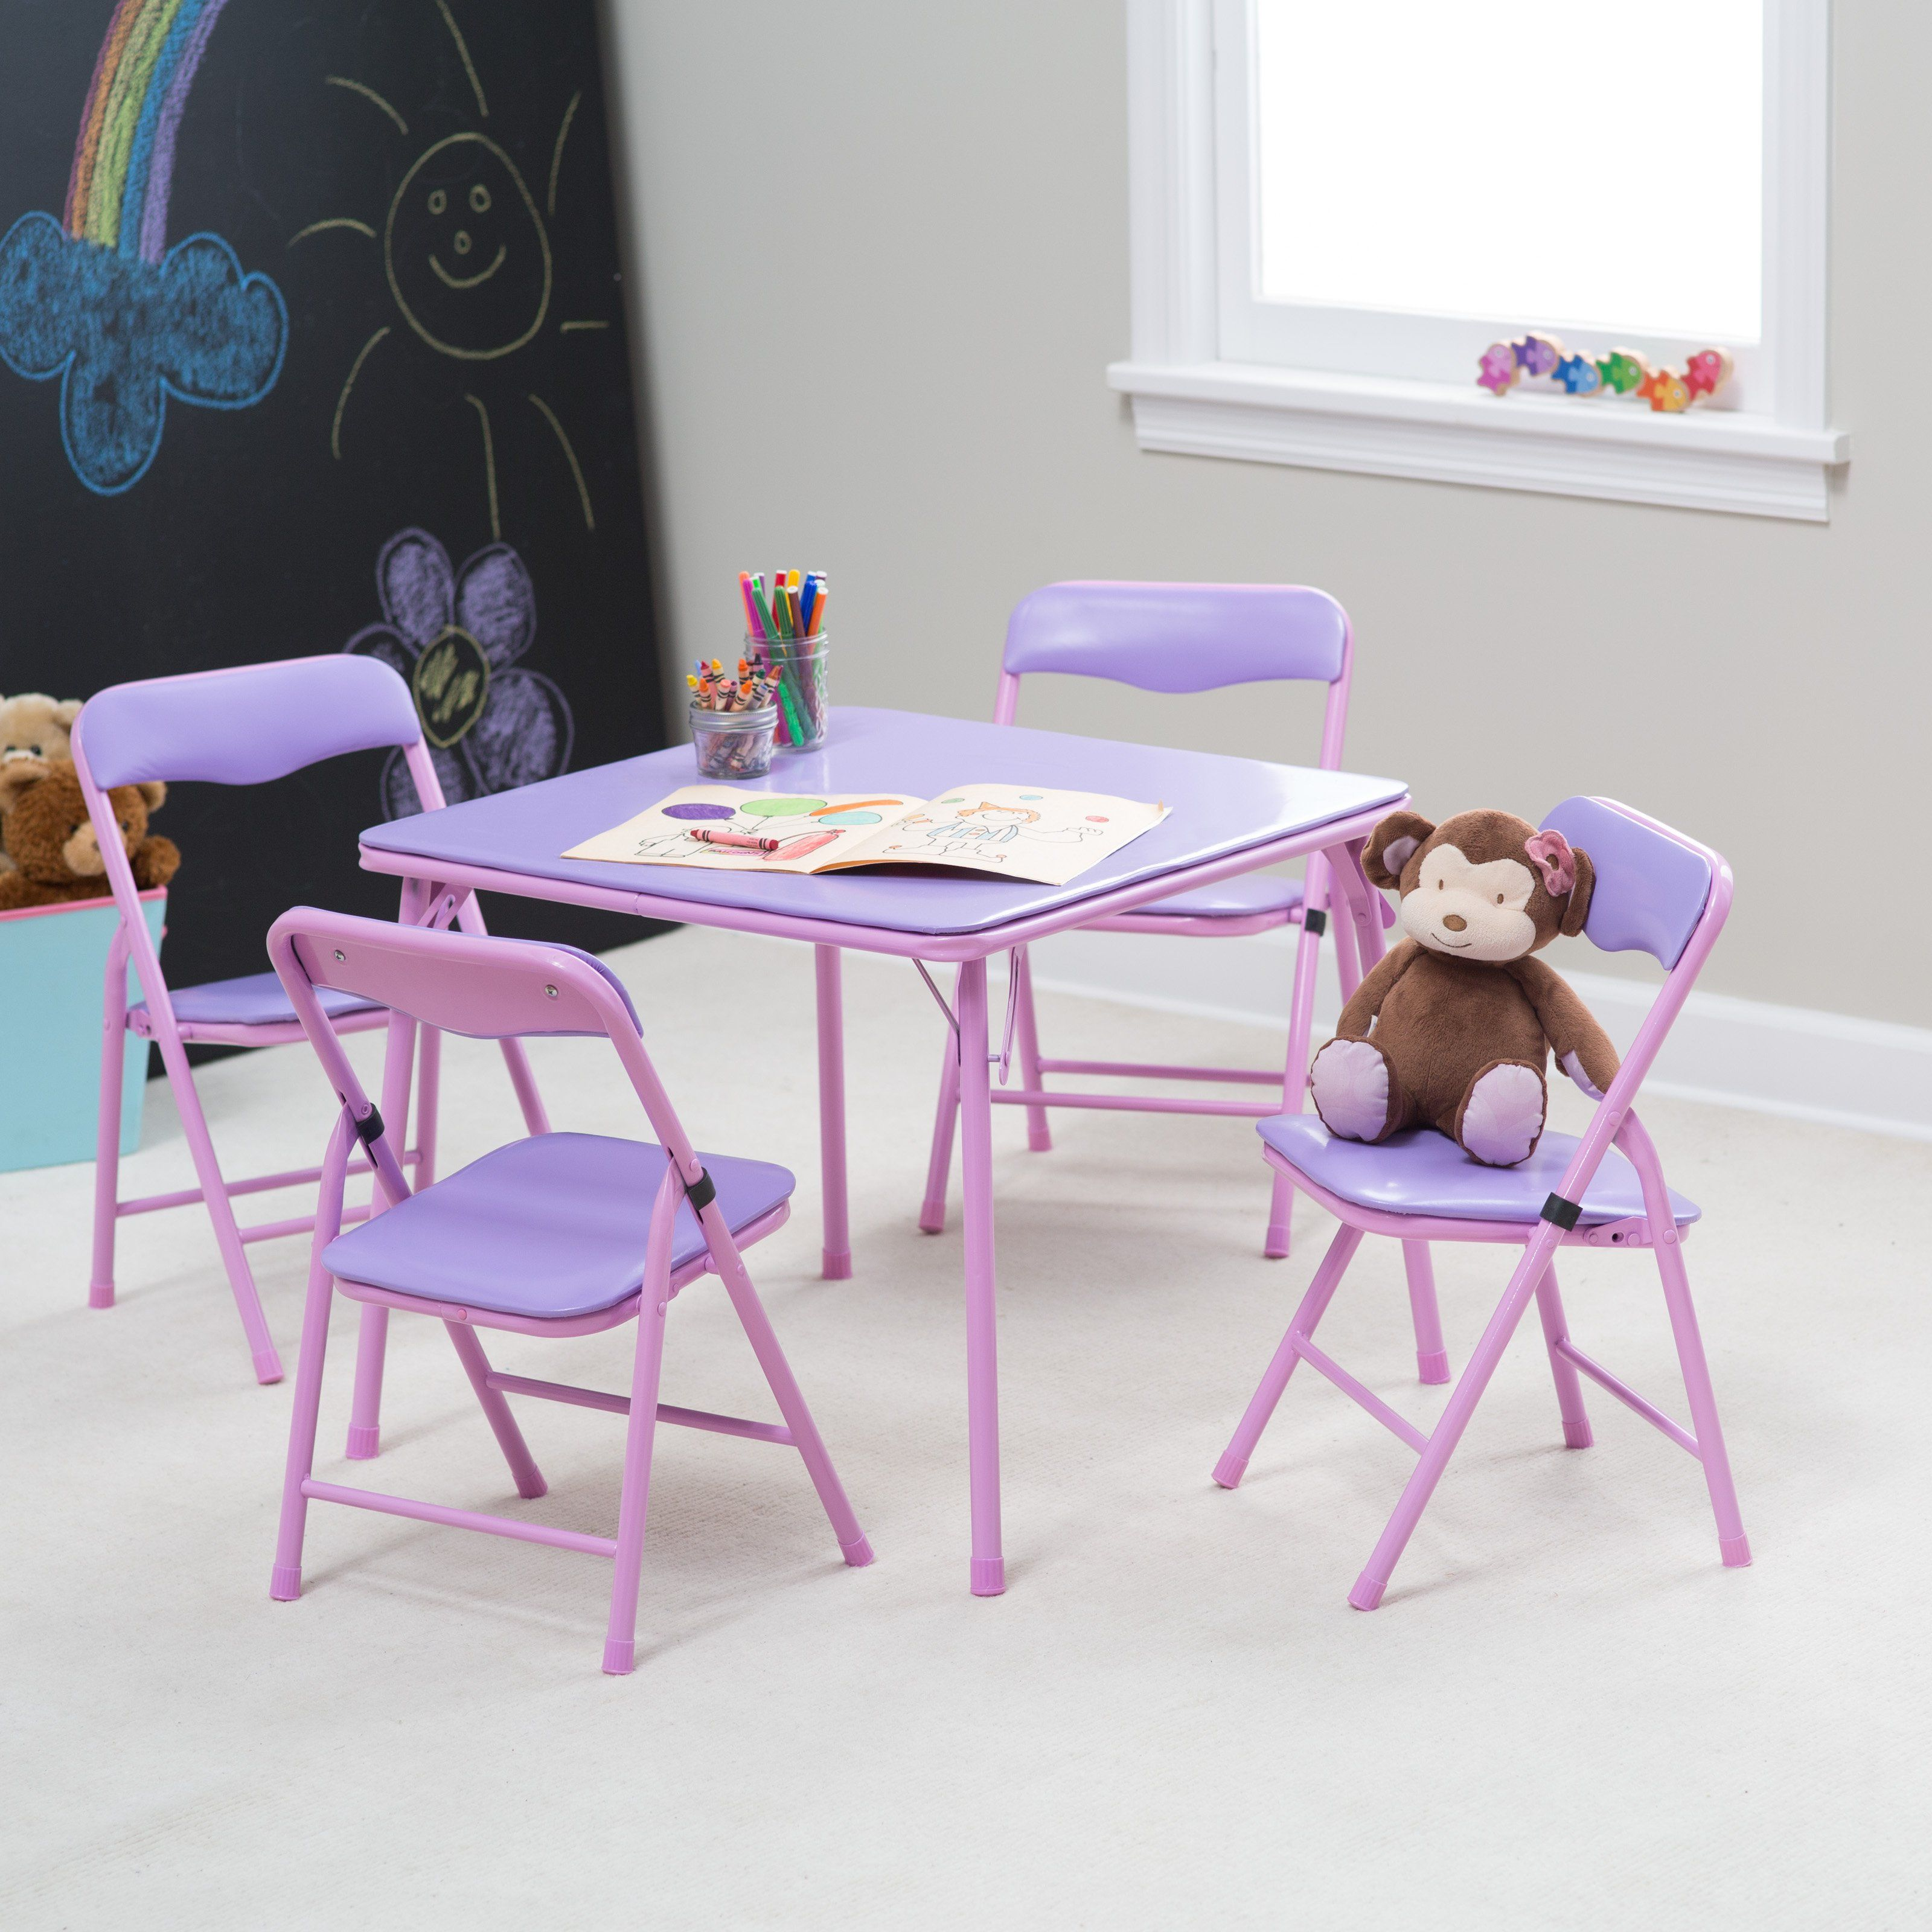 Why You Should Consider Getting Folding Chairs And Tables Designalls In 2020 Childrens Folding Table Kids Art Table Toddler Table